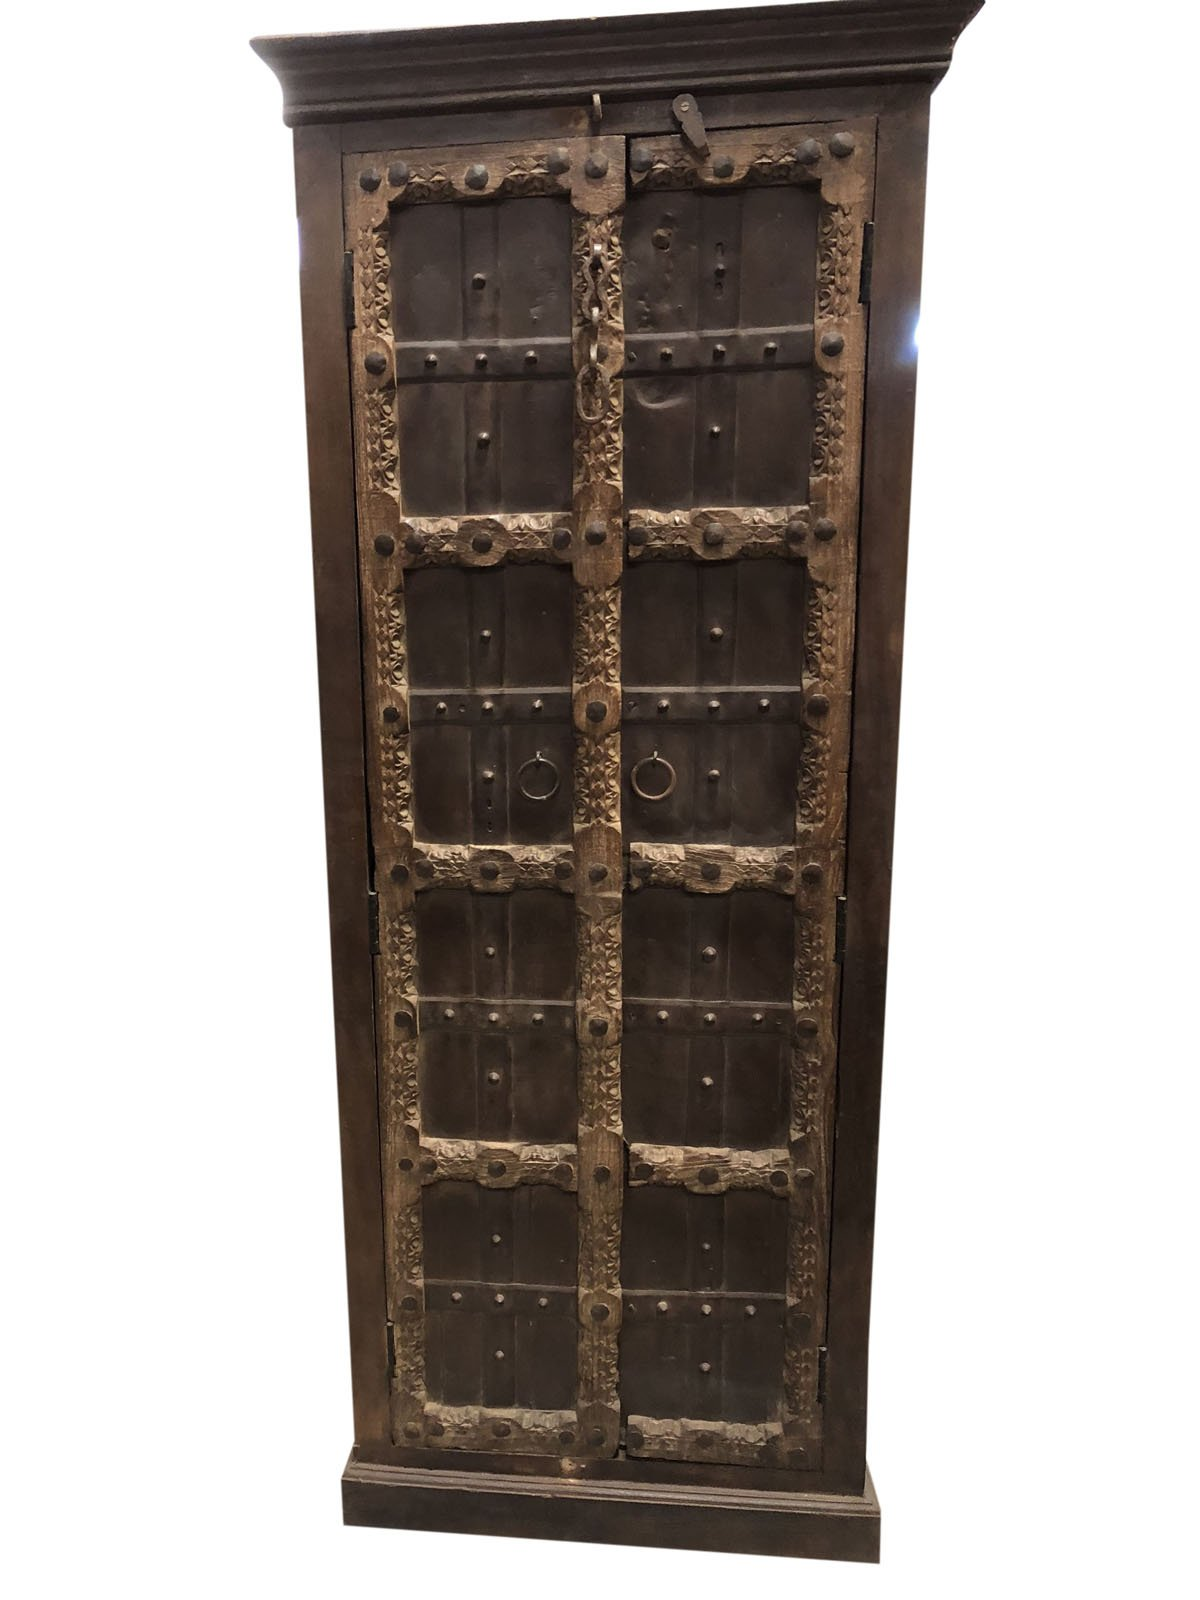 Mogul Interior Antique Indian Armoire Hand Carved Iron Nailed Brown Storage Wardrobe Cabinet Conscious Interiors Design by Mogul Interior (Image #1)